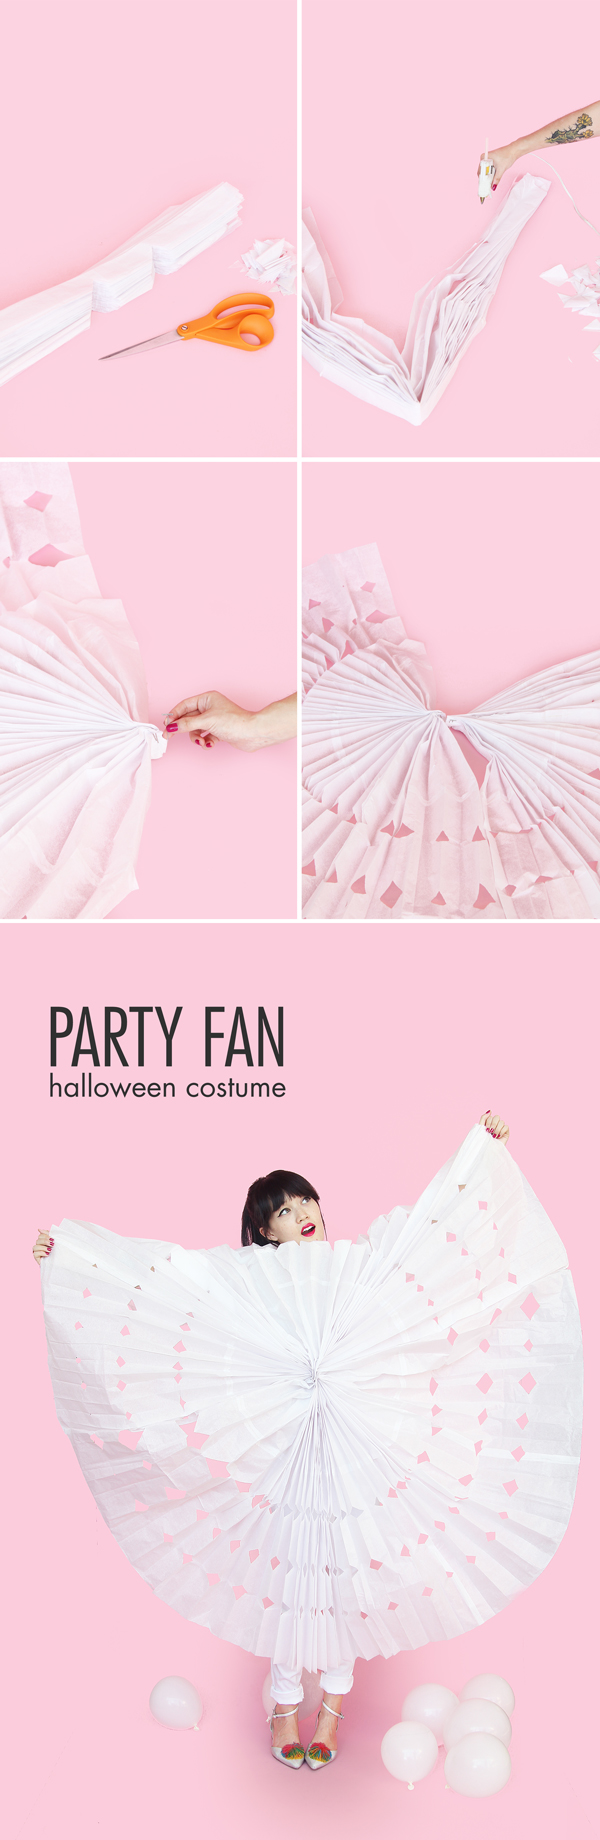 Party Fan Halloween Costume